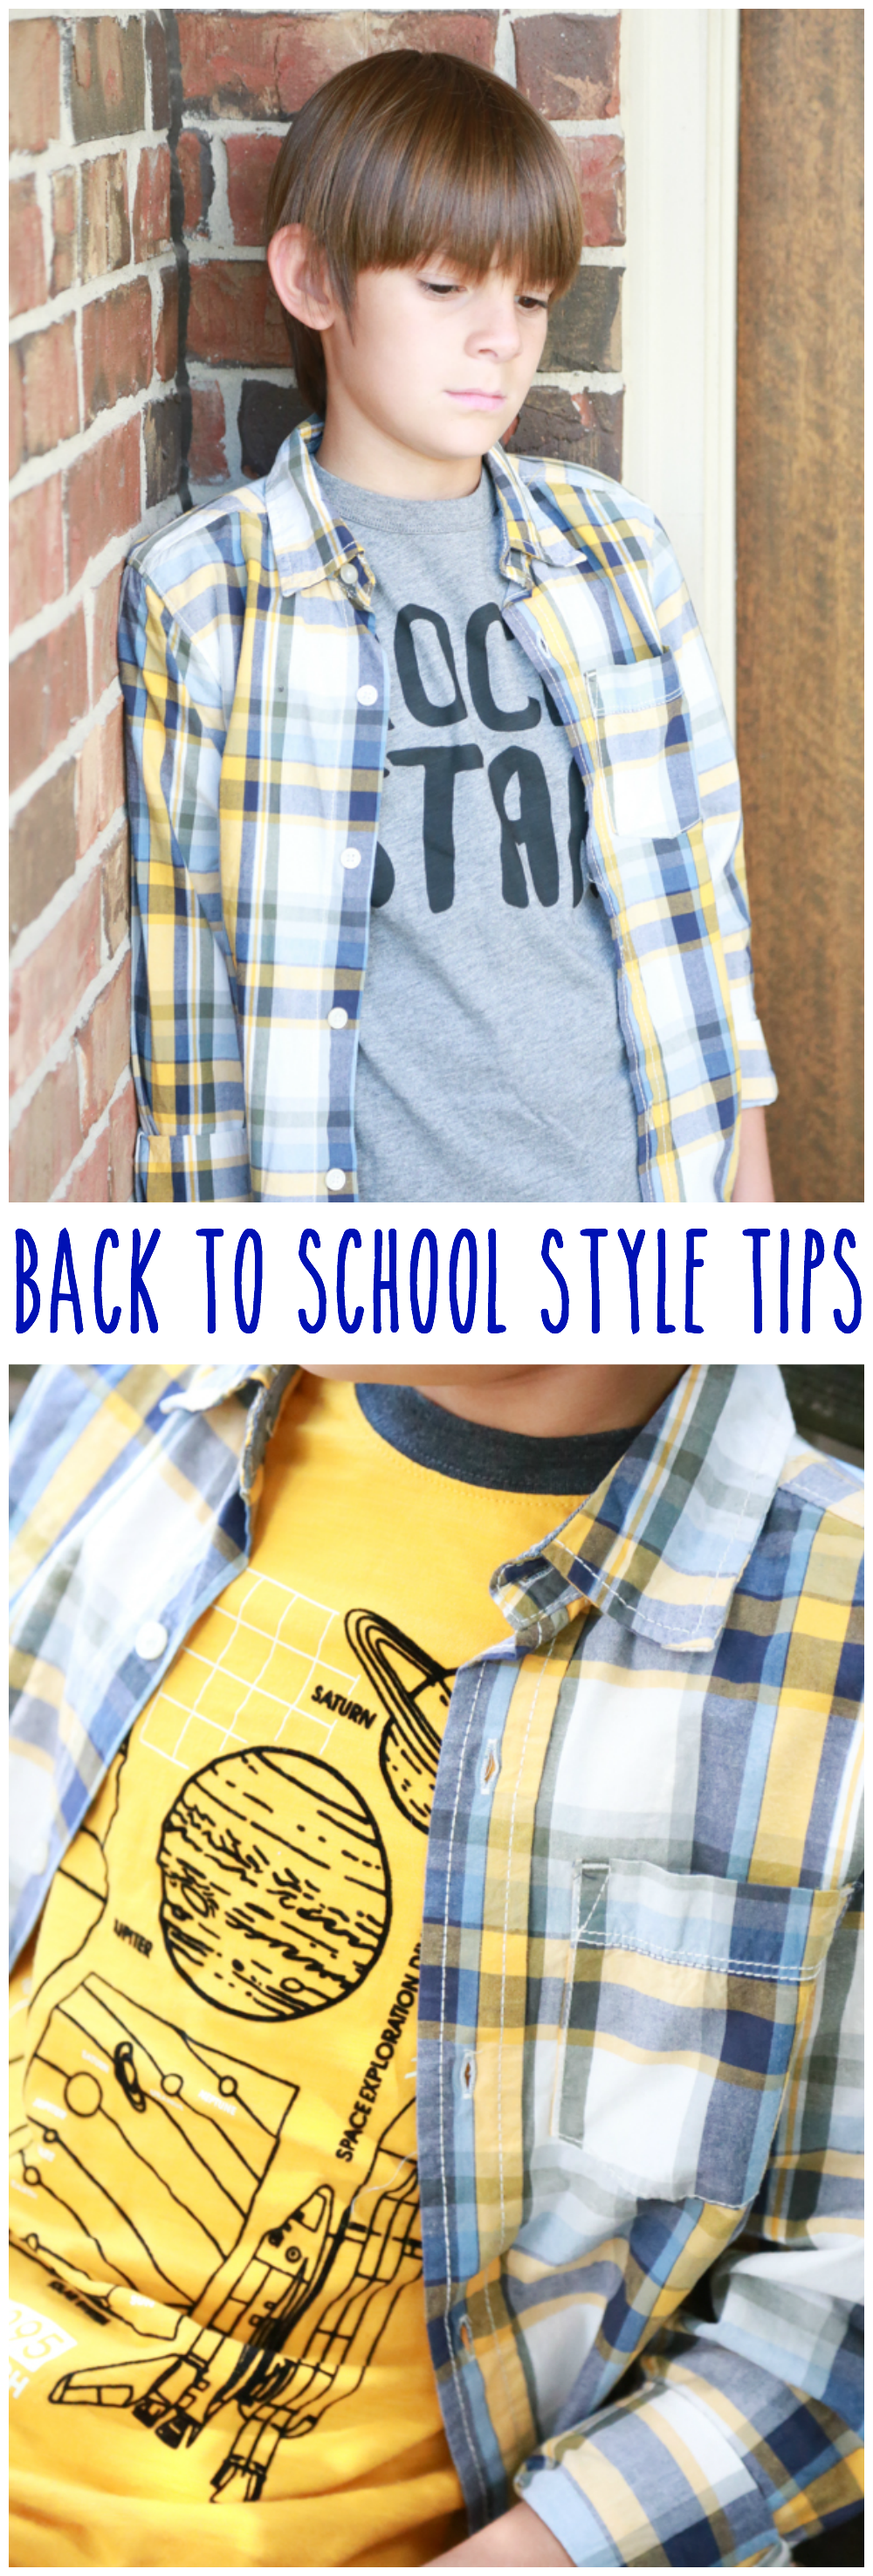 With the kids headed back to school, these Back to School Style tips will come in handy while shopping.